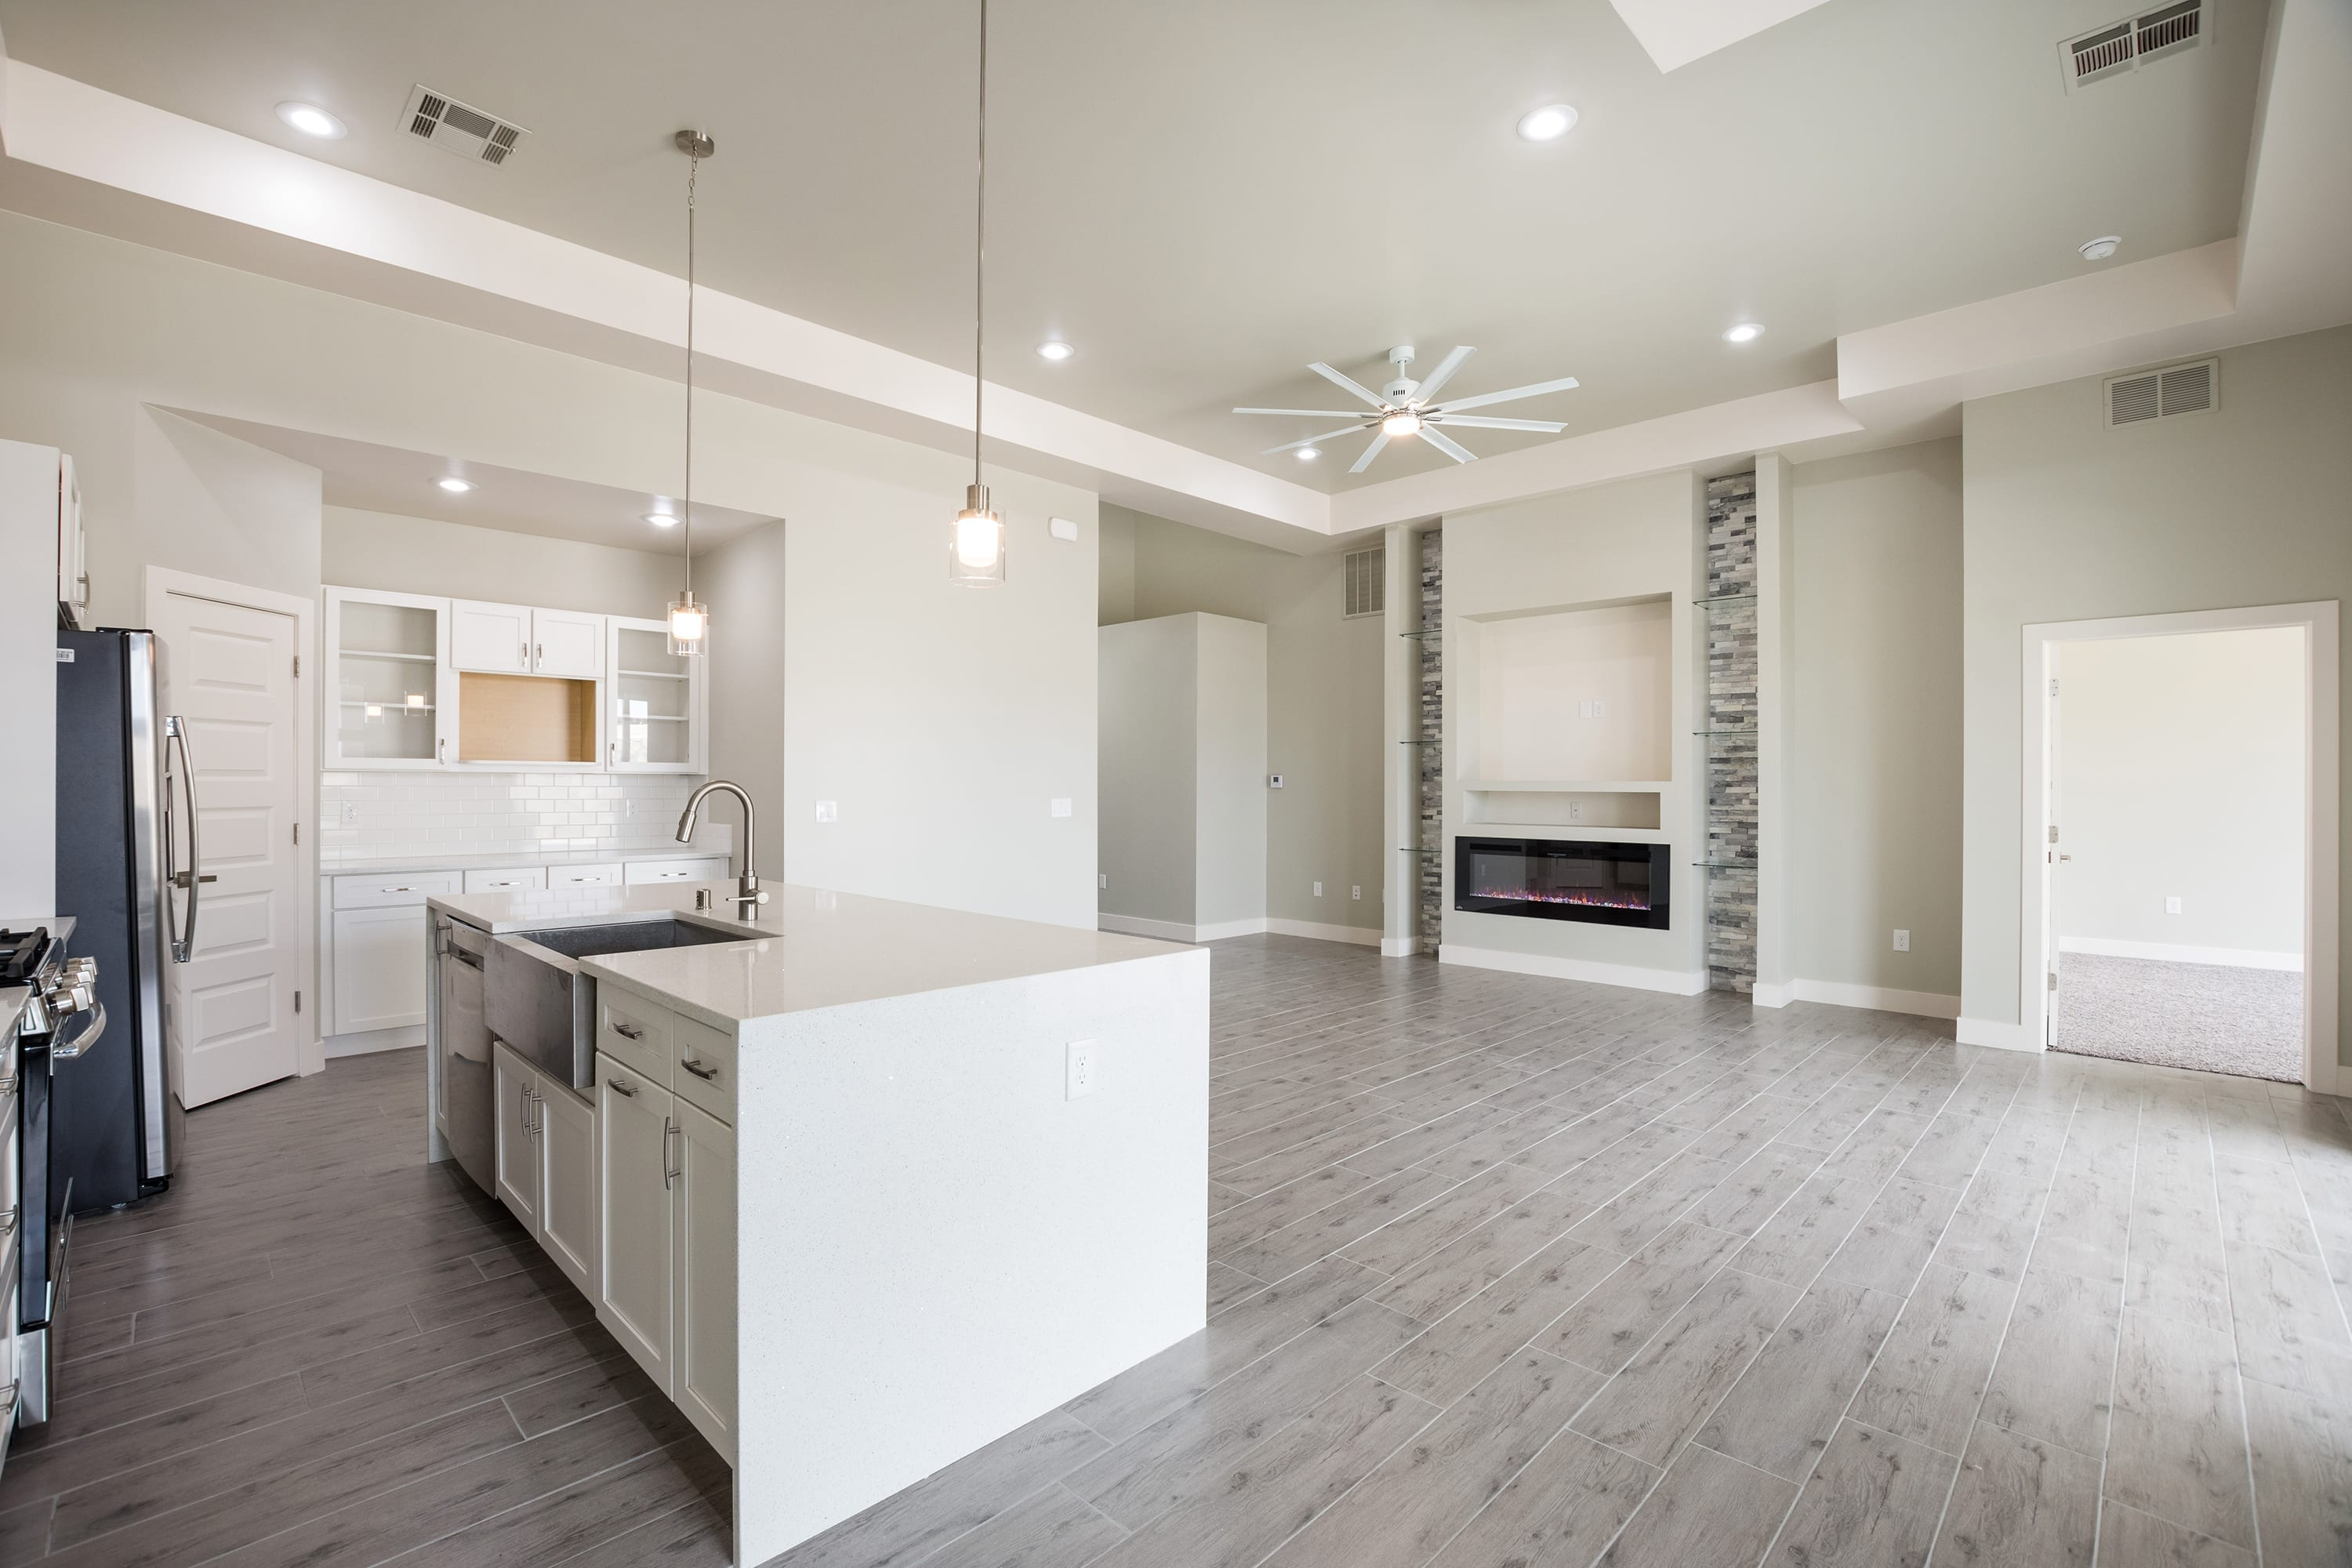 Interior Shot of kitchen and living area in 2884 Maddox contemporary home